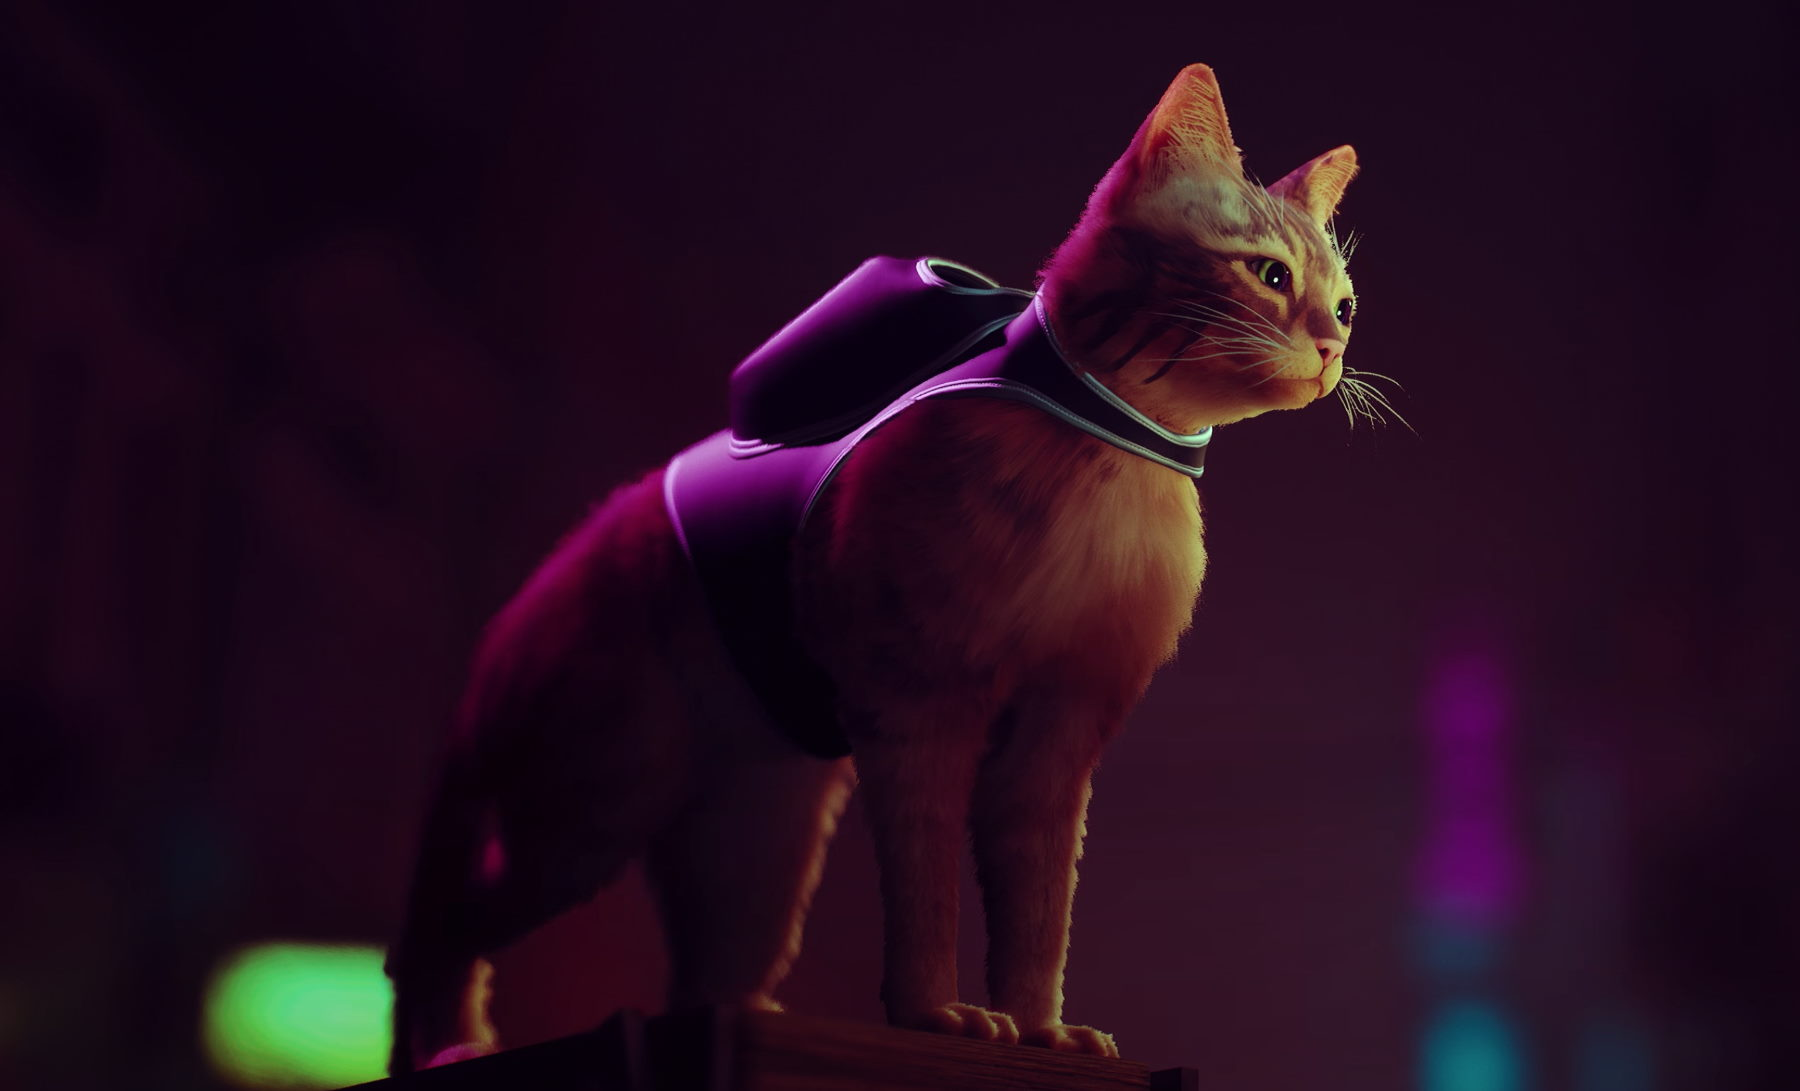 Screenshot of cat from Stray in PS5|Kowloon walled city in hong kong|